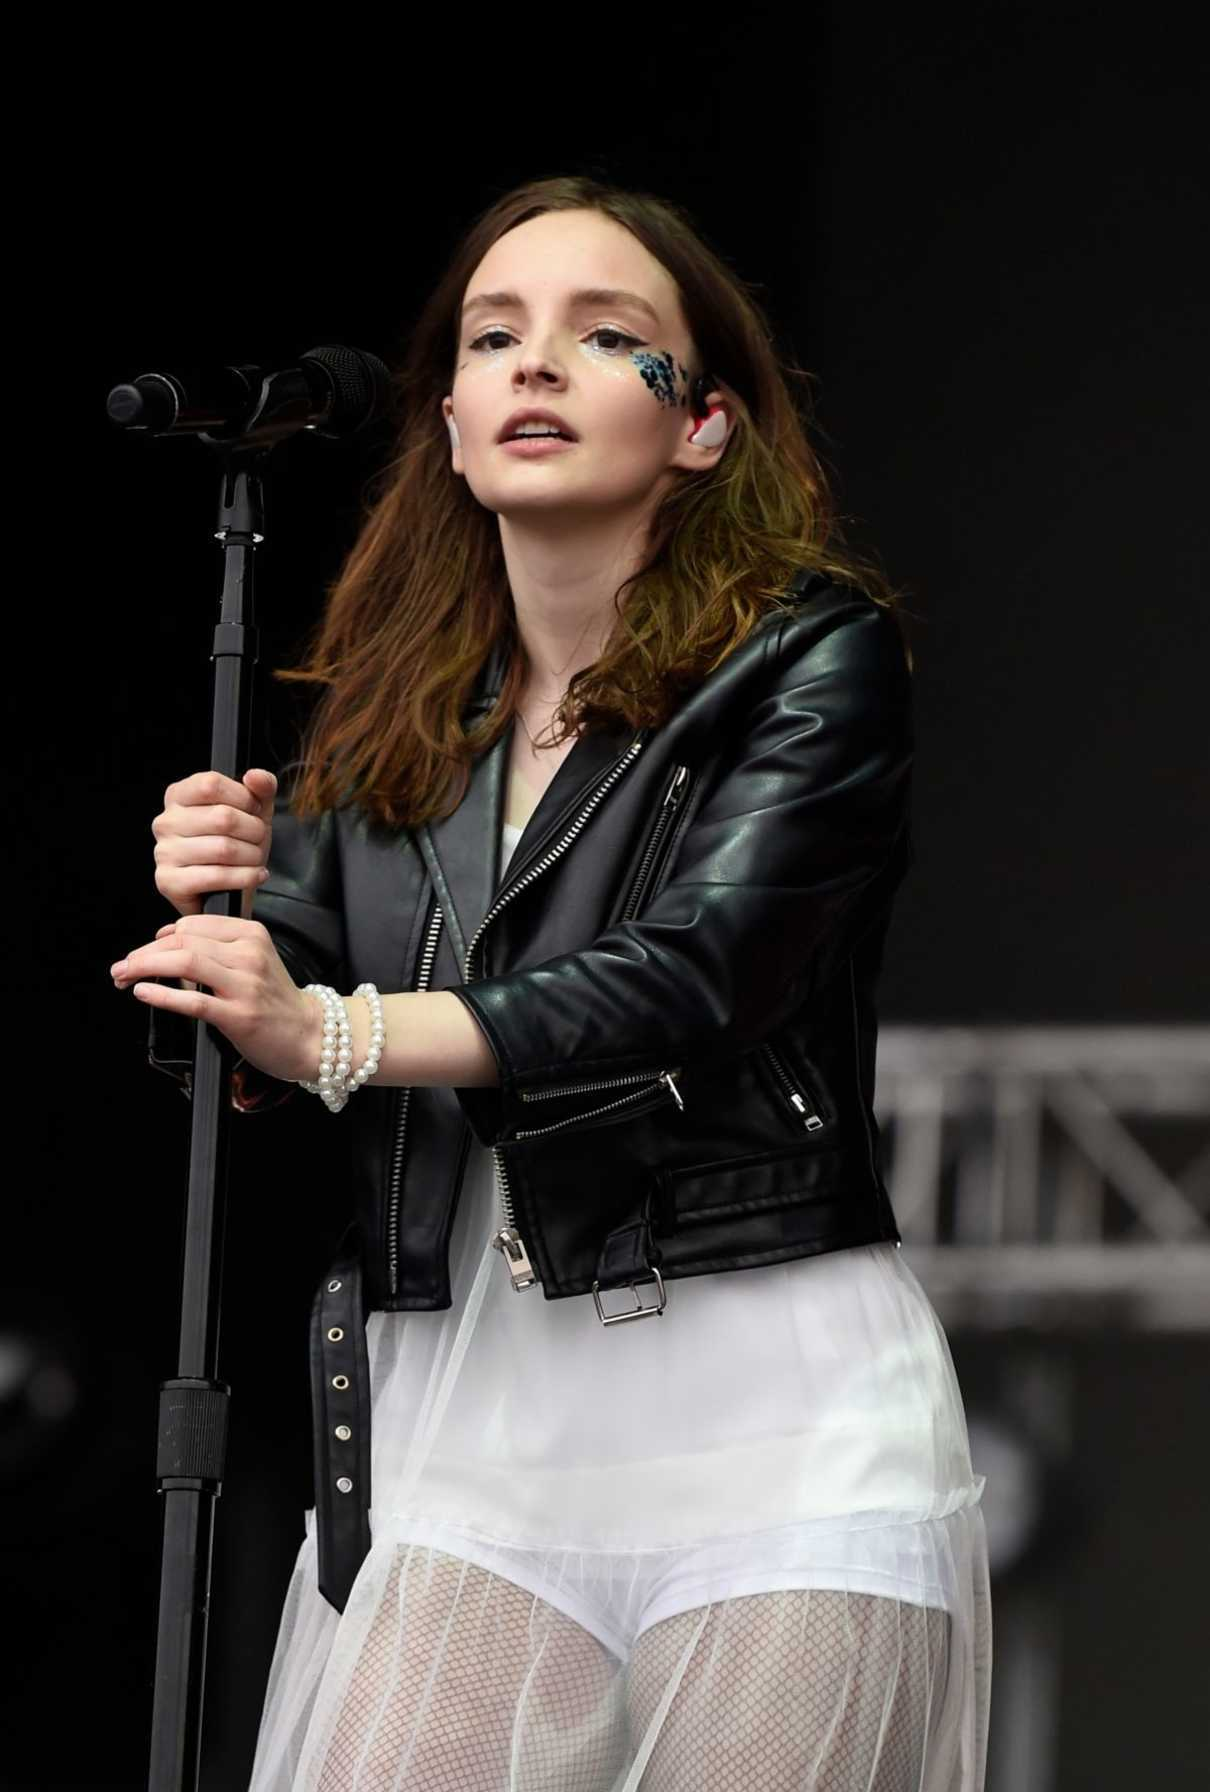 Lauren Mayberry Performs During the Parklife Festival at Heaton Park in Manchester 06/10/2018-5